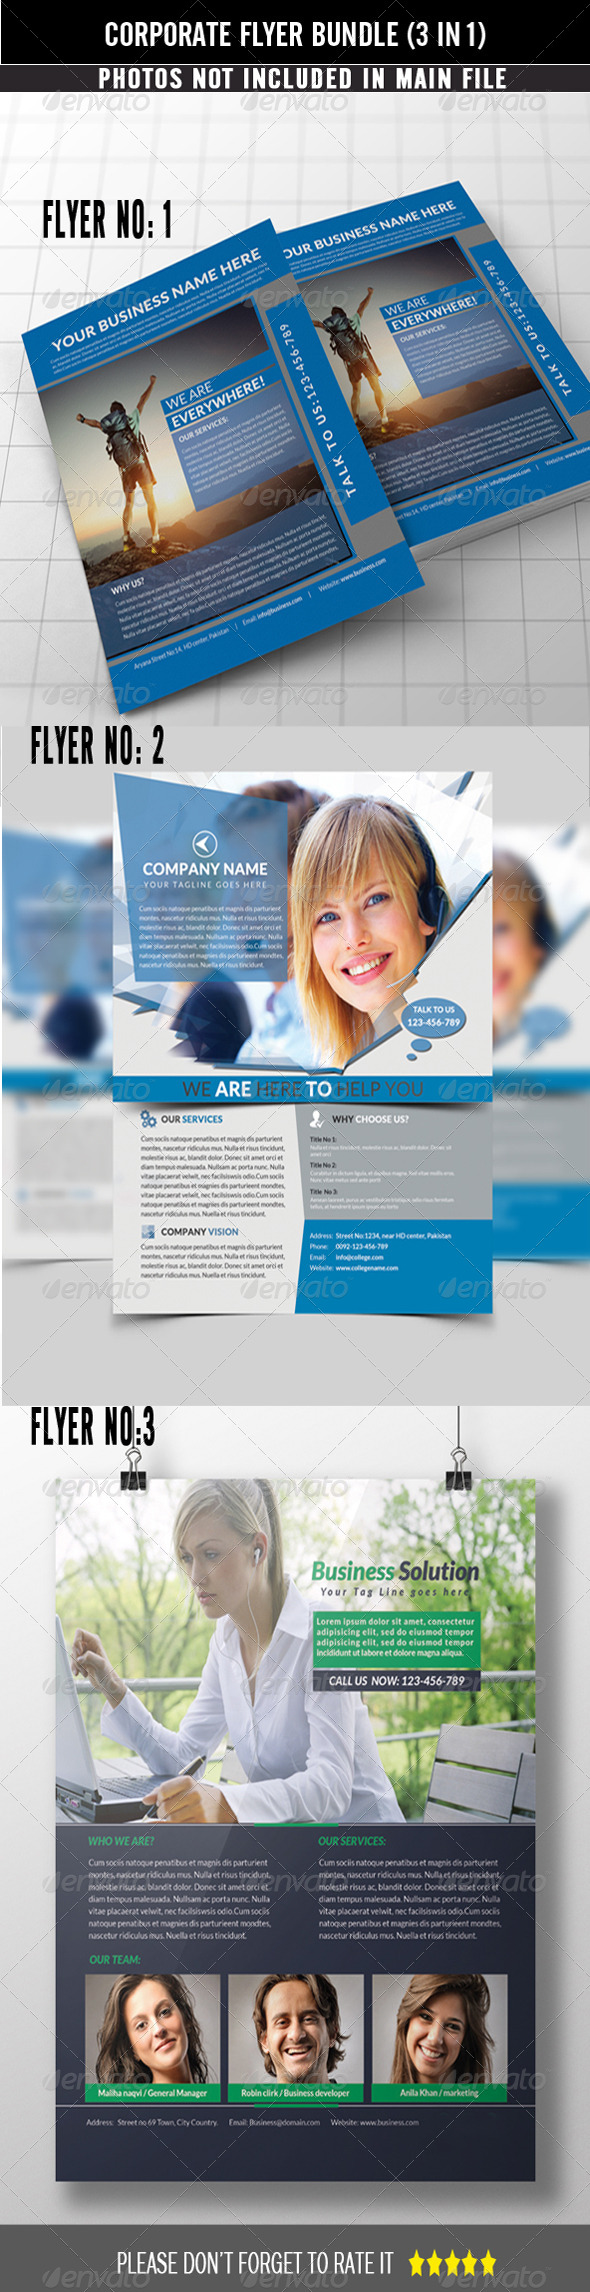 GraphicRiver Corporate Flyer Bundle 3 in 1 7888818